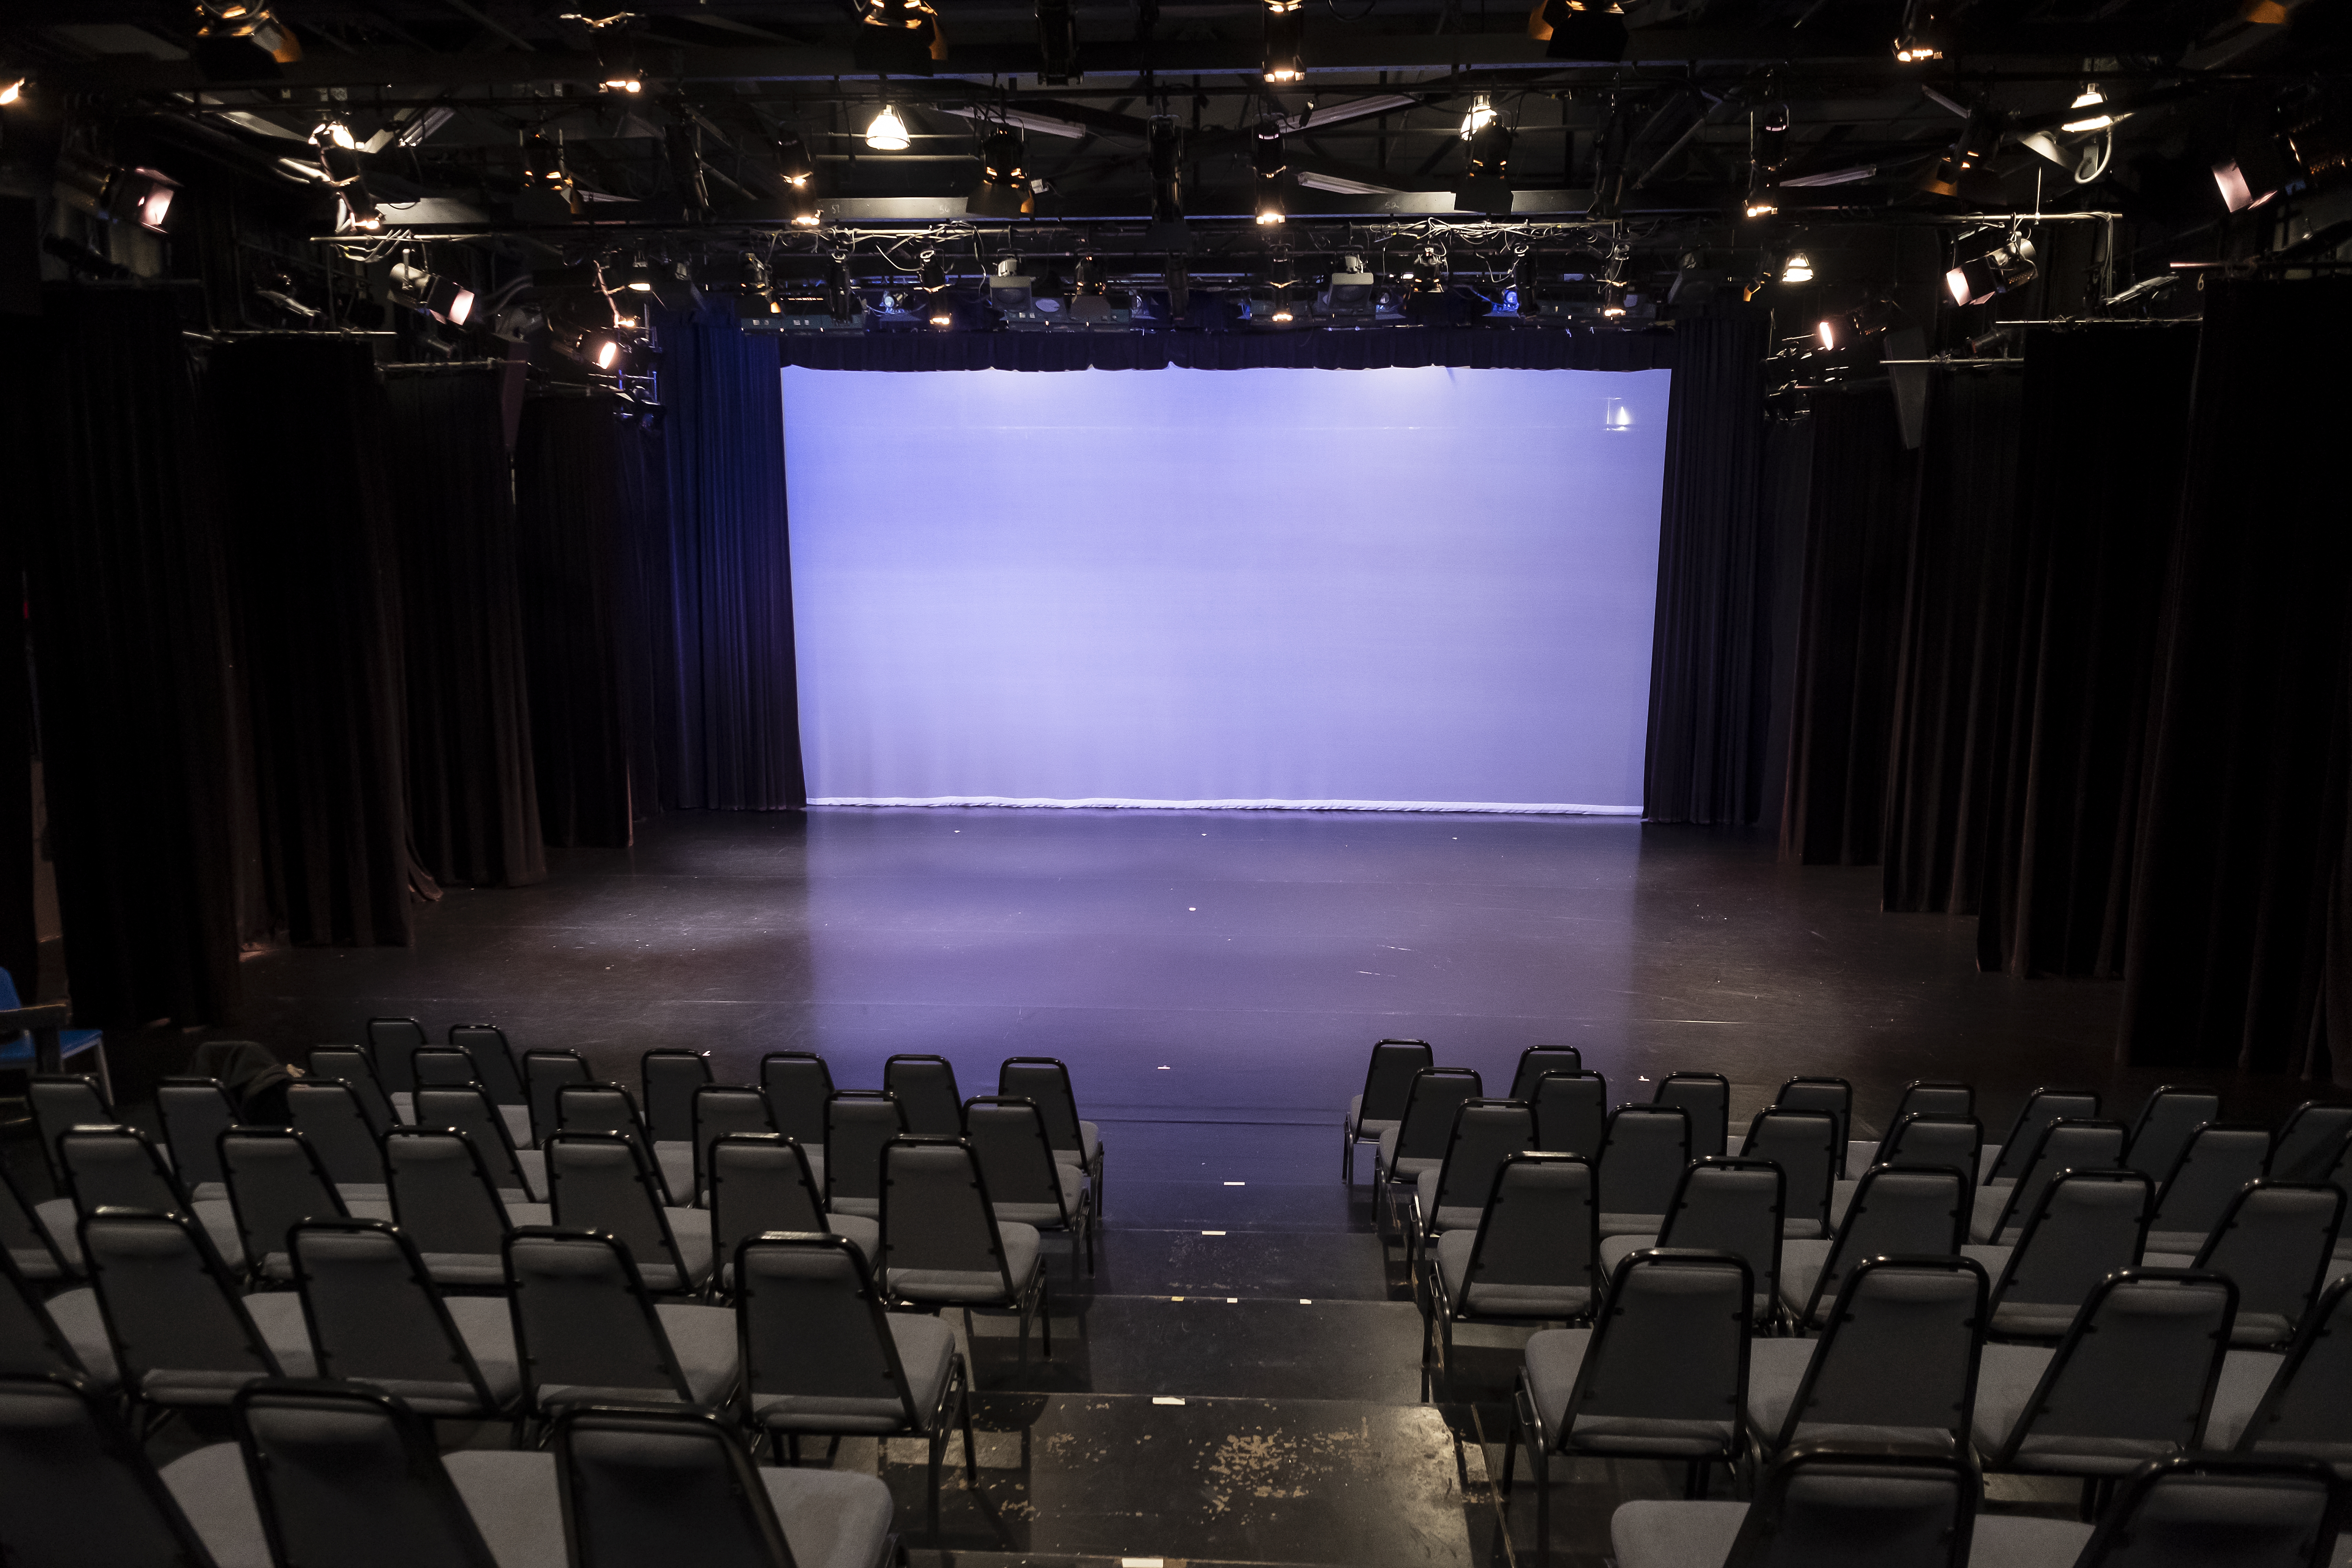 Black box theater with seats on either side of an aisle, leading to empty stage